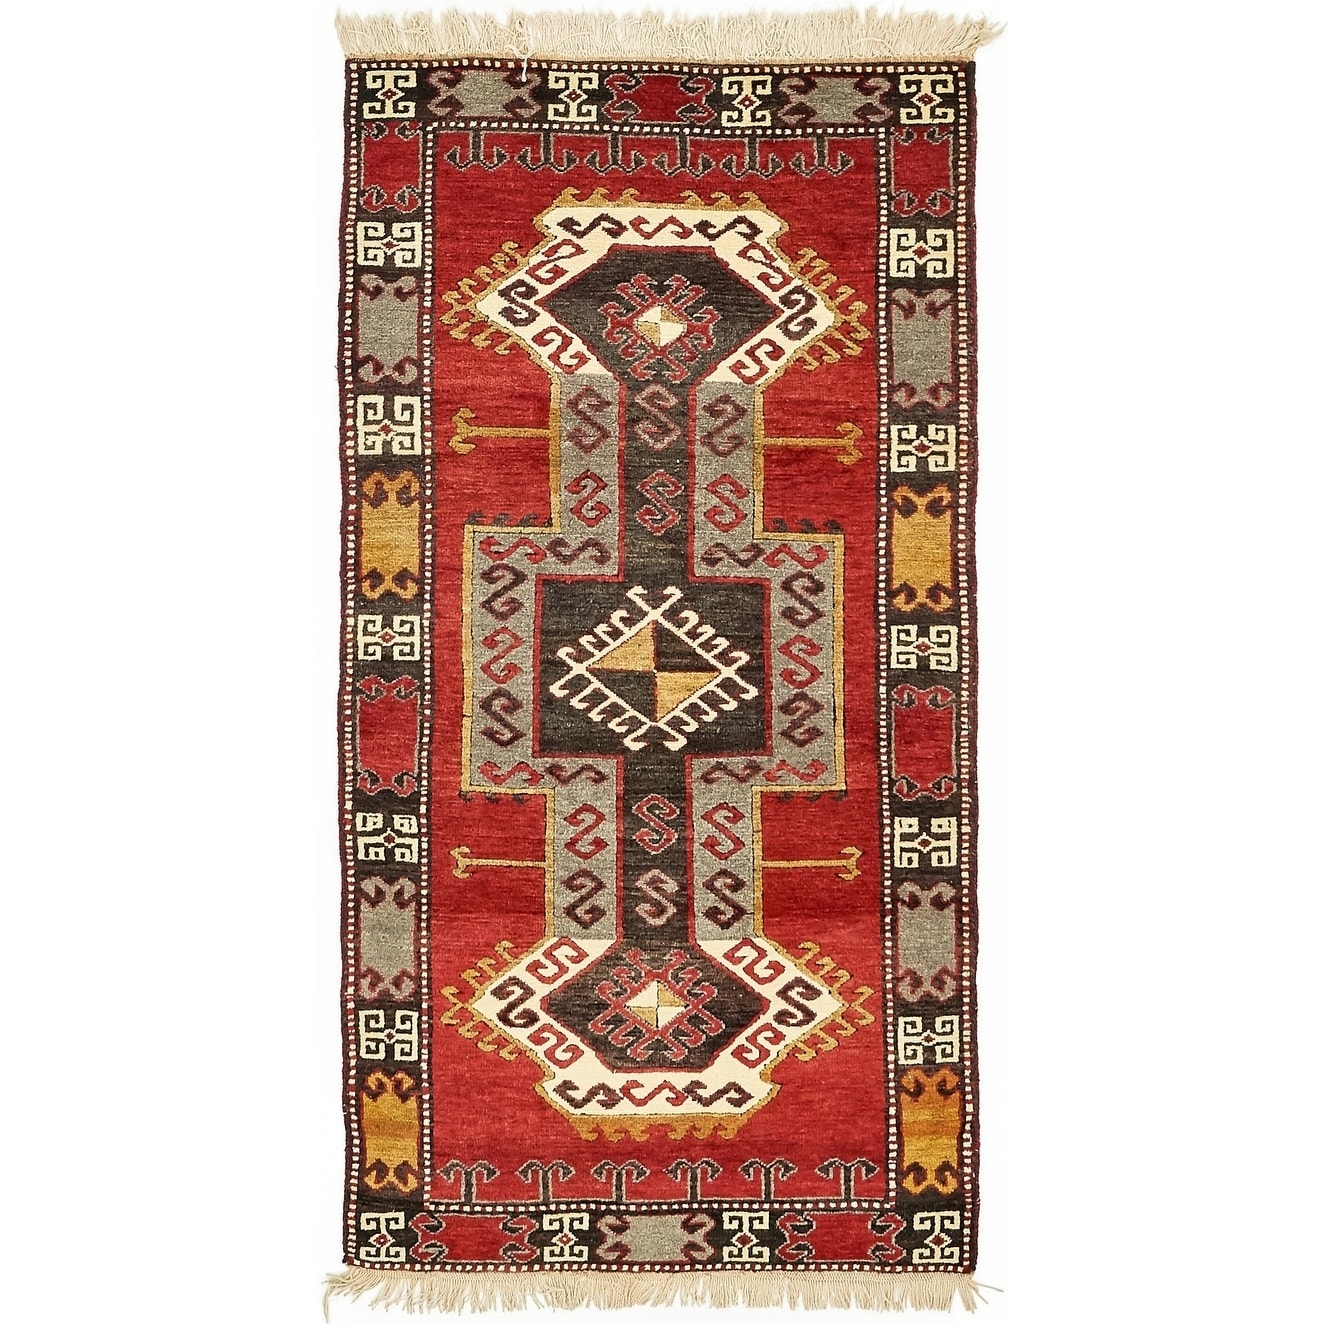 Hand Knotted Kars Wool Area Rug - 3' 3 x 6' 5 (Black - 3' 3 x 6' 5)